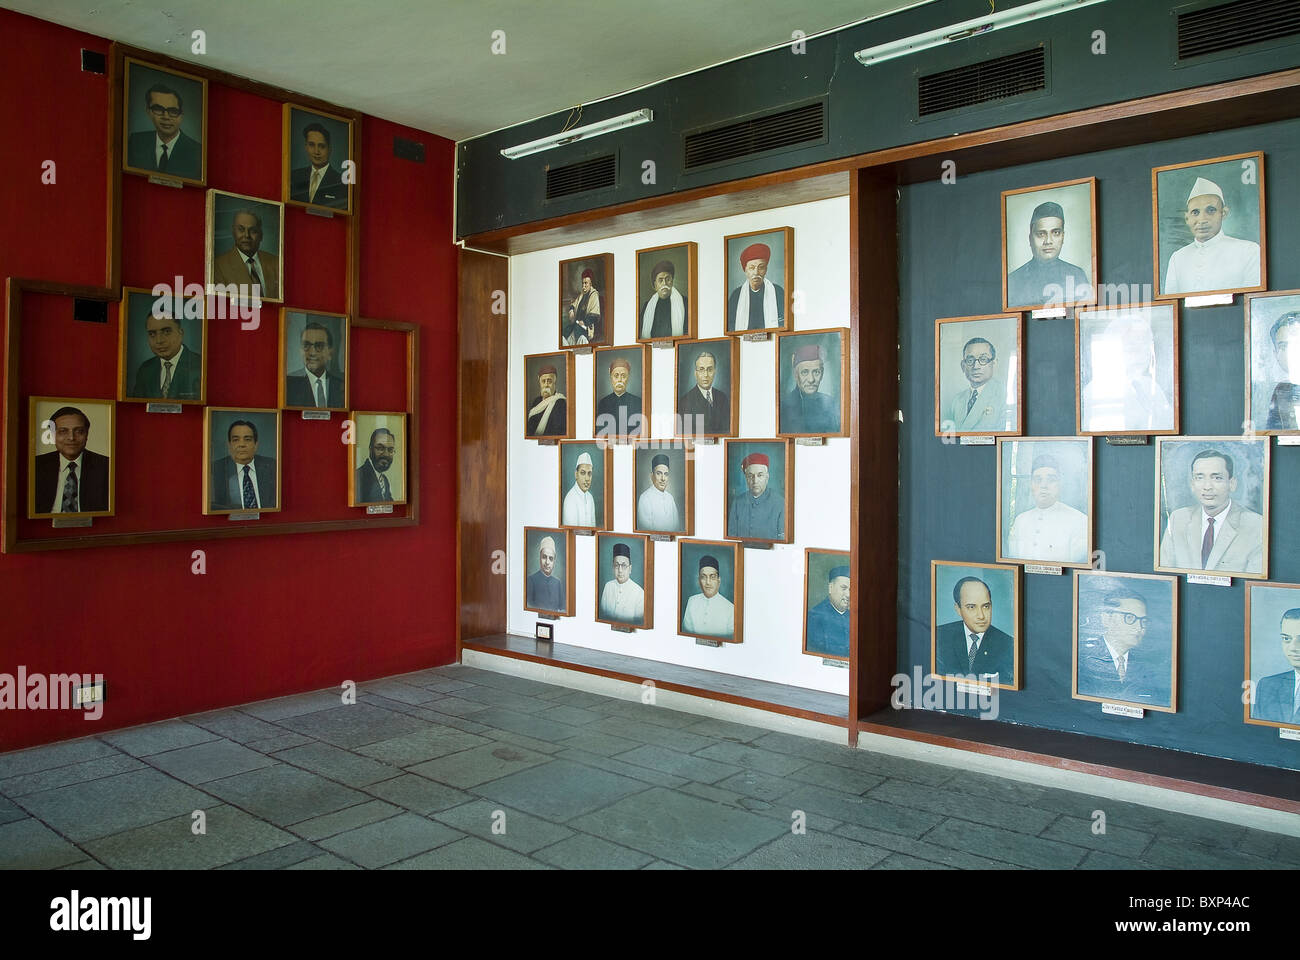 Room with portraits of millowners at The Millowners Association Building designed by Le Corbusier in Ahmedabad, - Stock Image